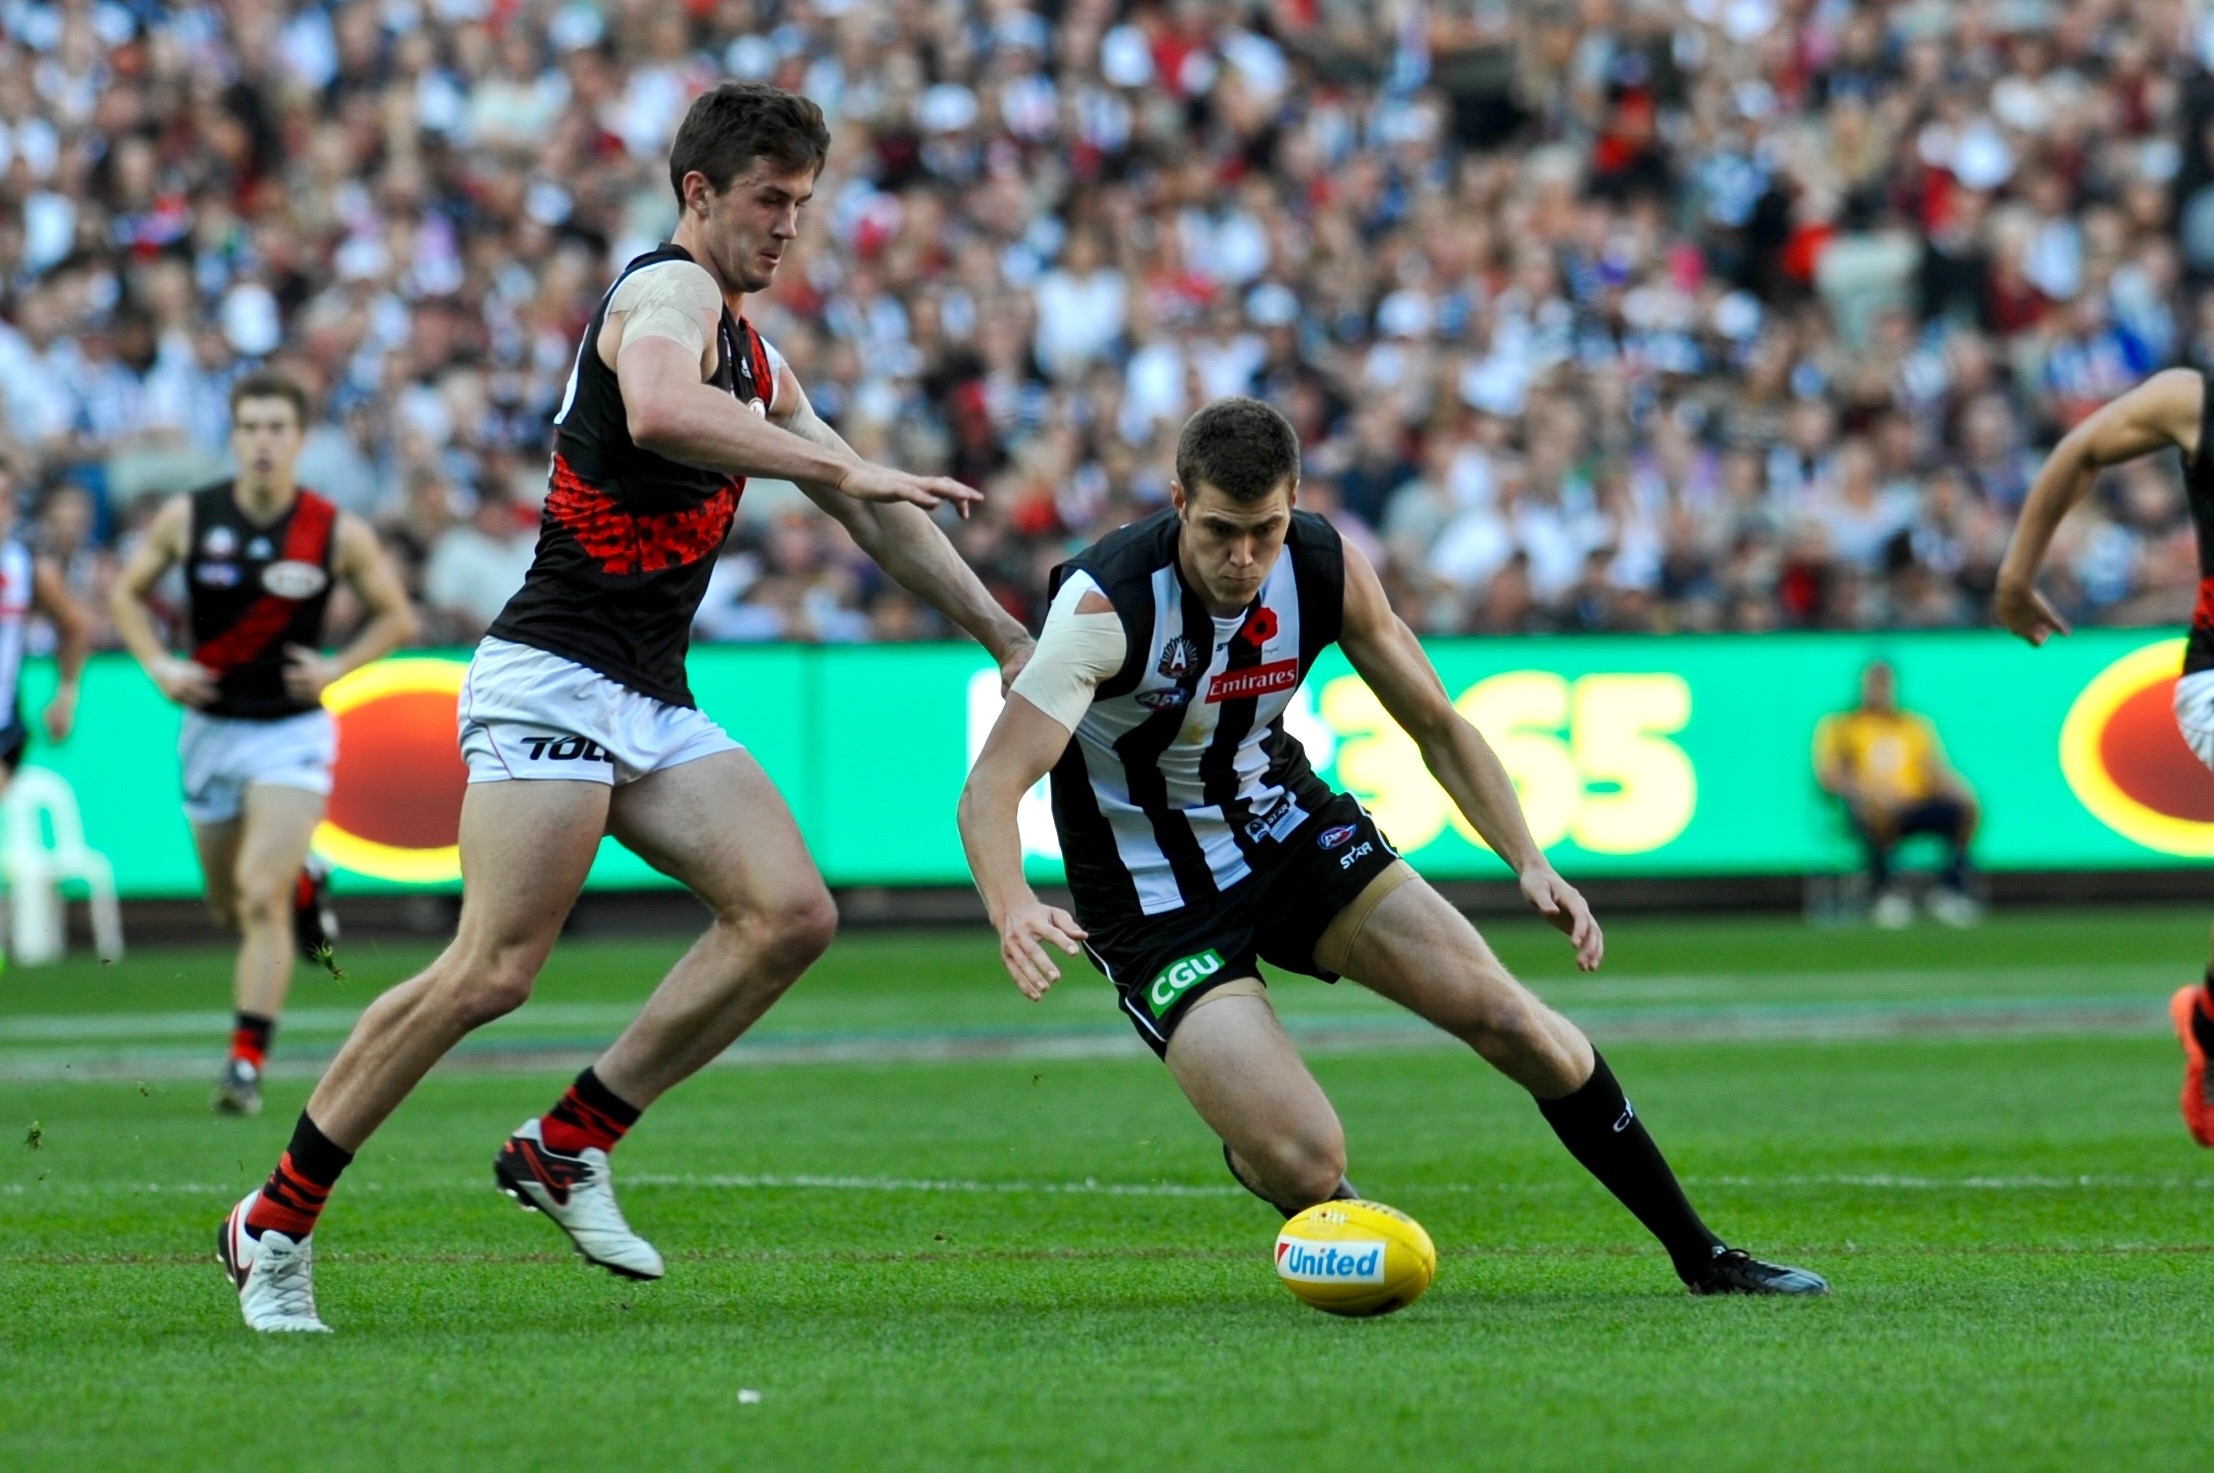 Mason Cox goes for the ball. Photo by Kim Densham for AFANA.